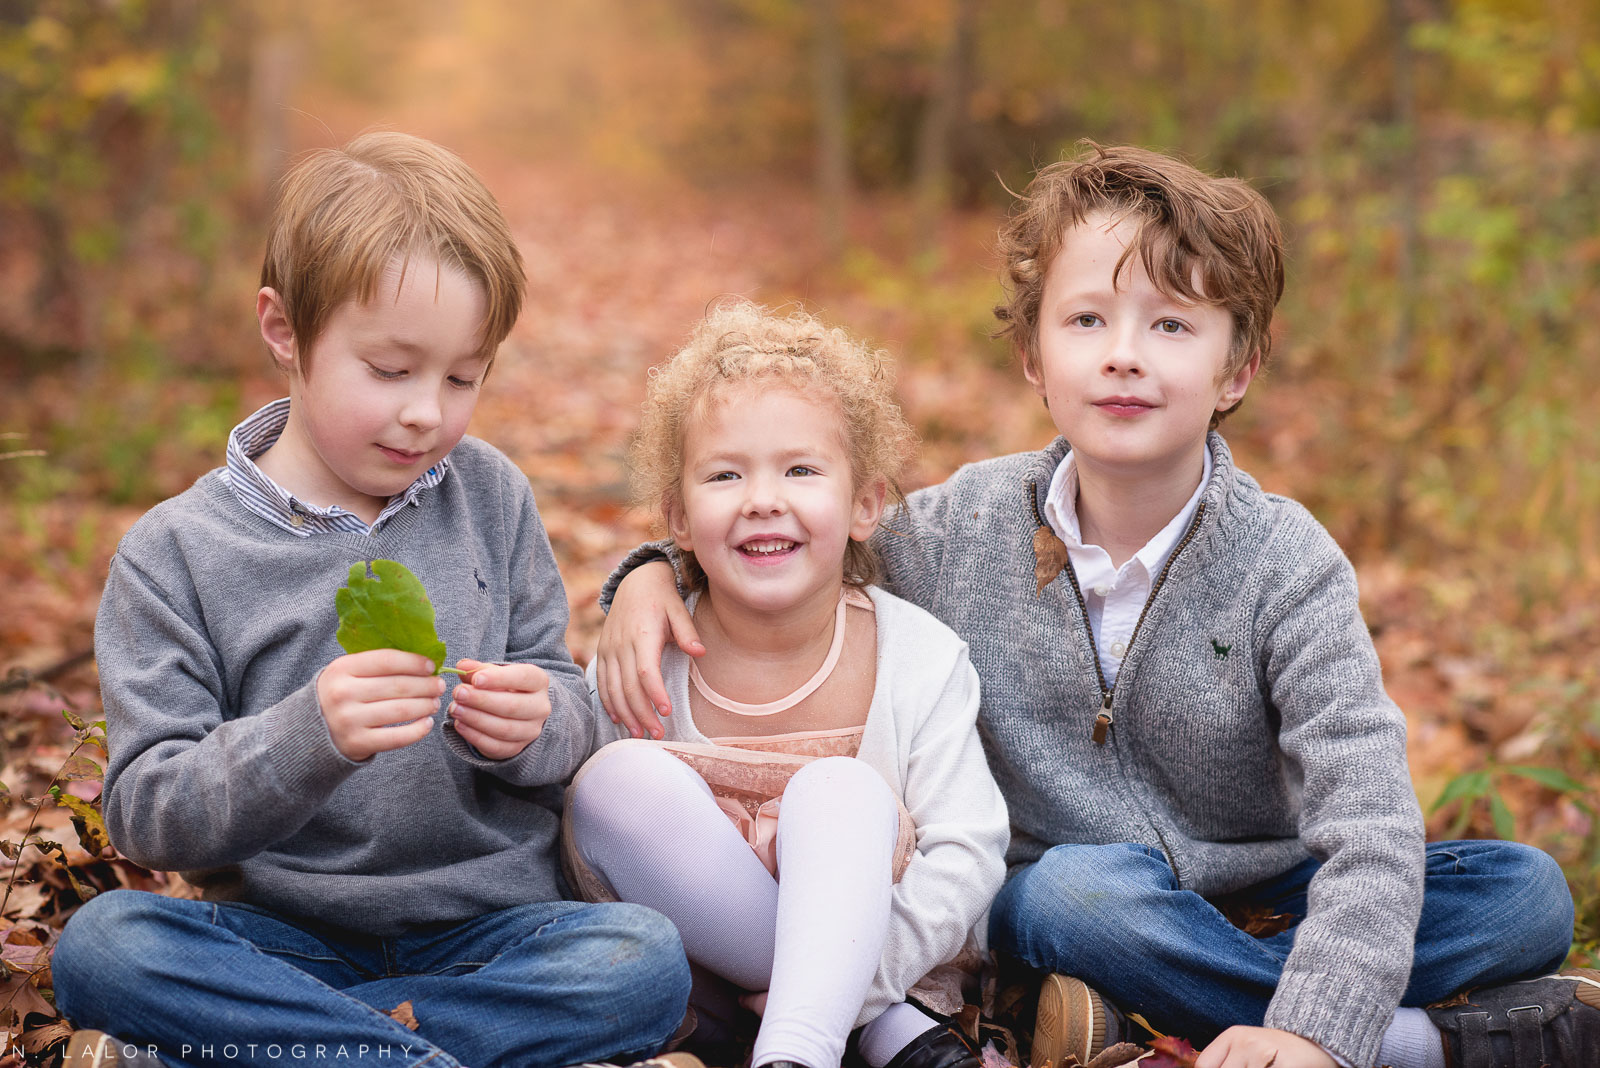 Siblings. Twin boys and their younger sister. Lifestyle portrait by N. Lalor Photography. New Canaan Nature Center.